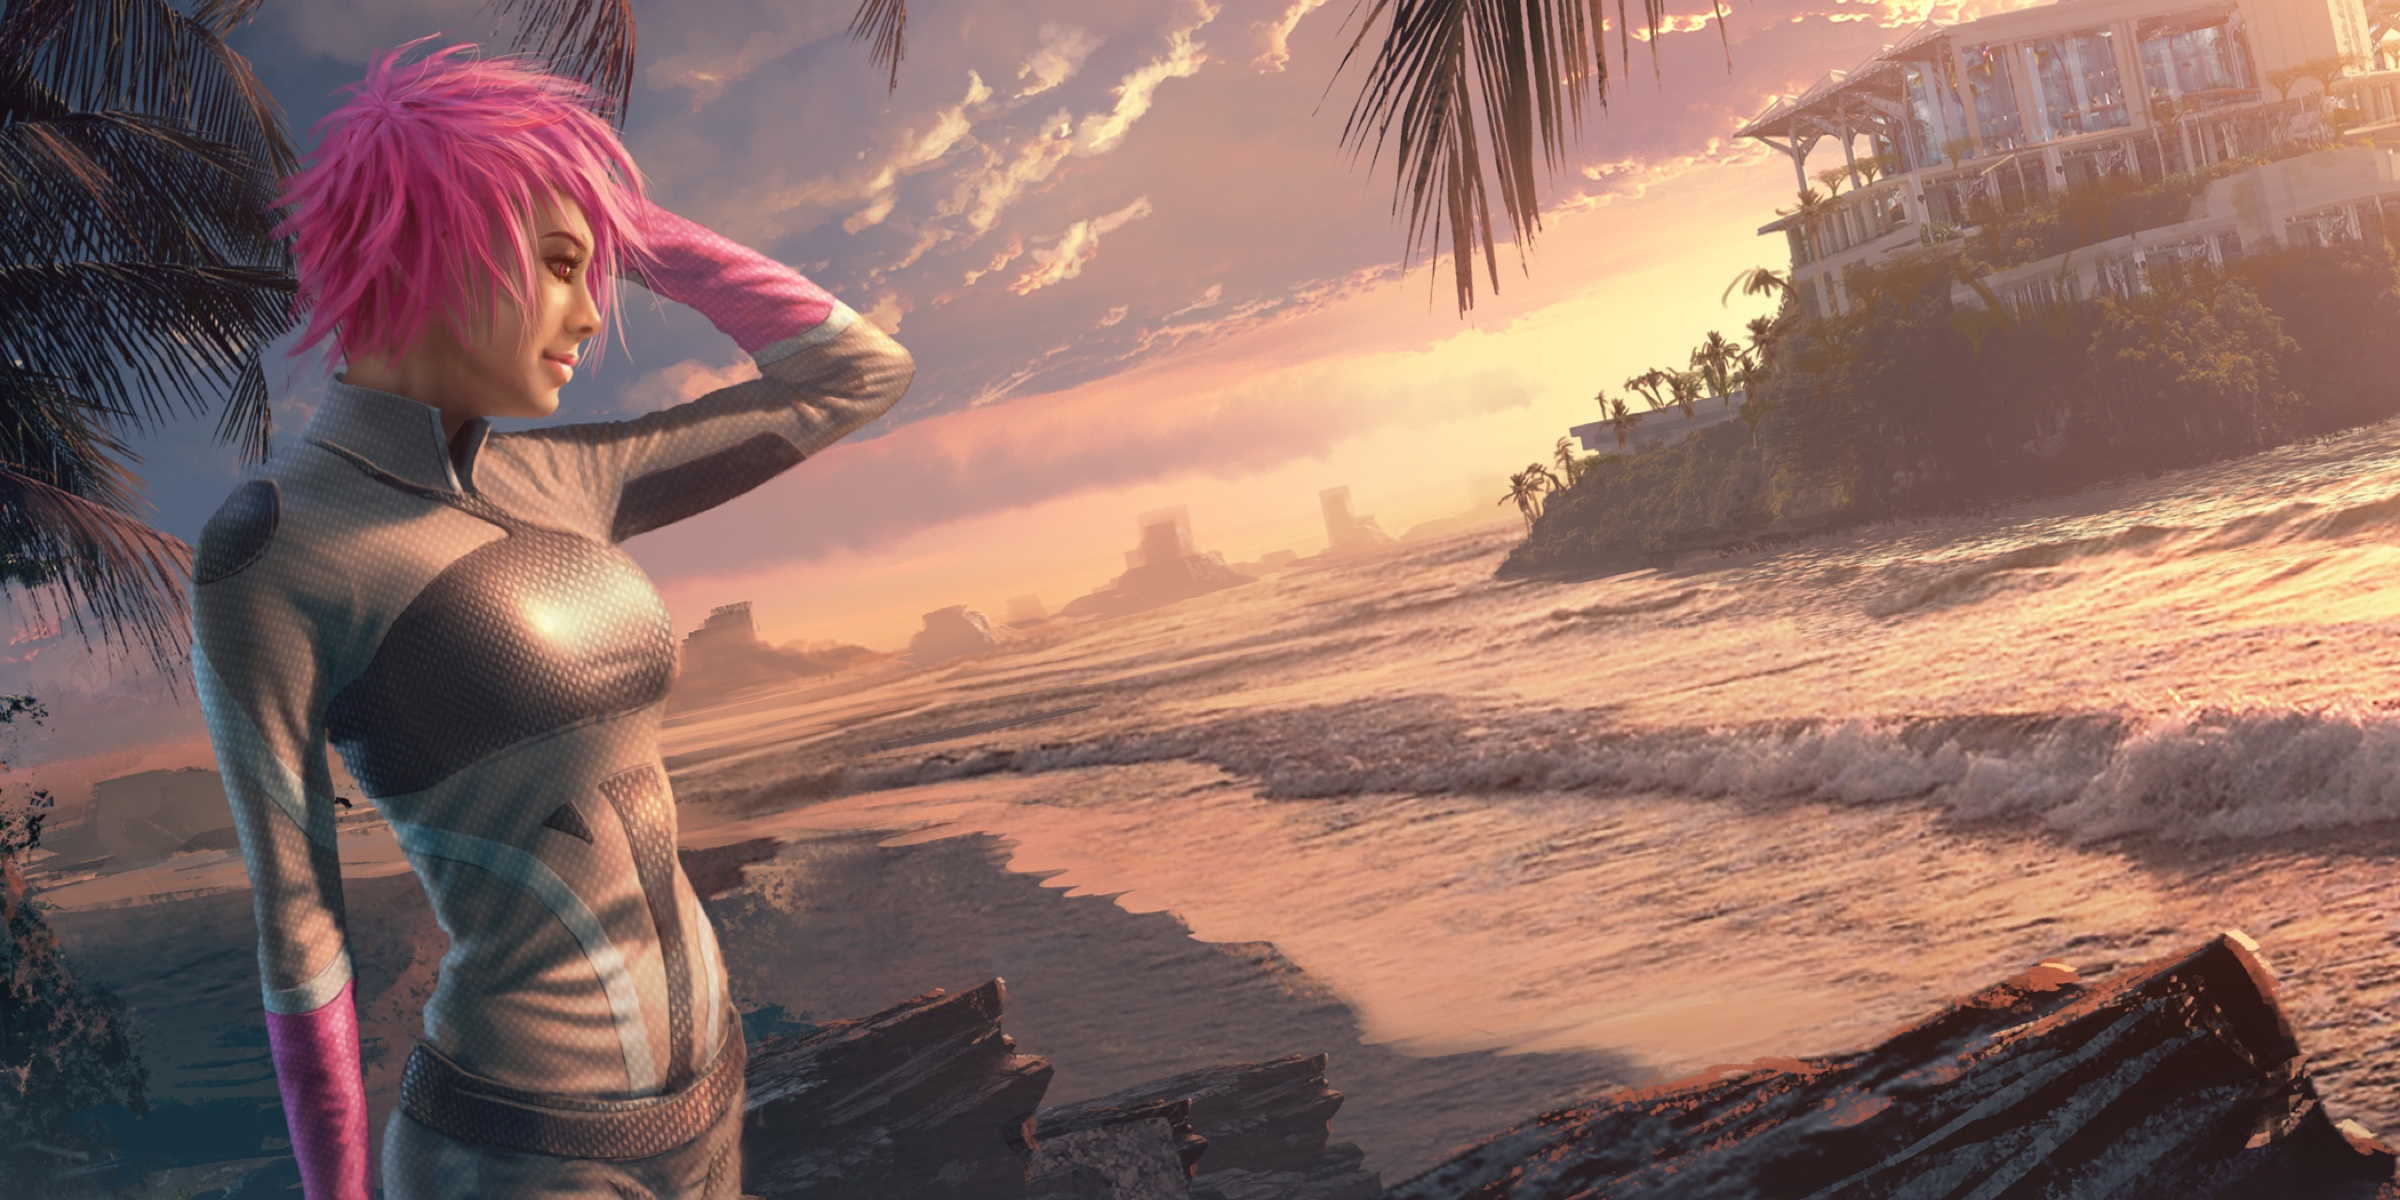 f0278aa4f More than a year in the making, the inaugural Anime Matsuri Hawaii  convention kicks off on Friday. One of the nation's largest Japanese  animation ...